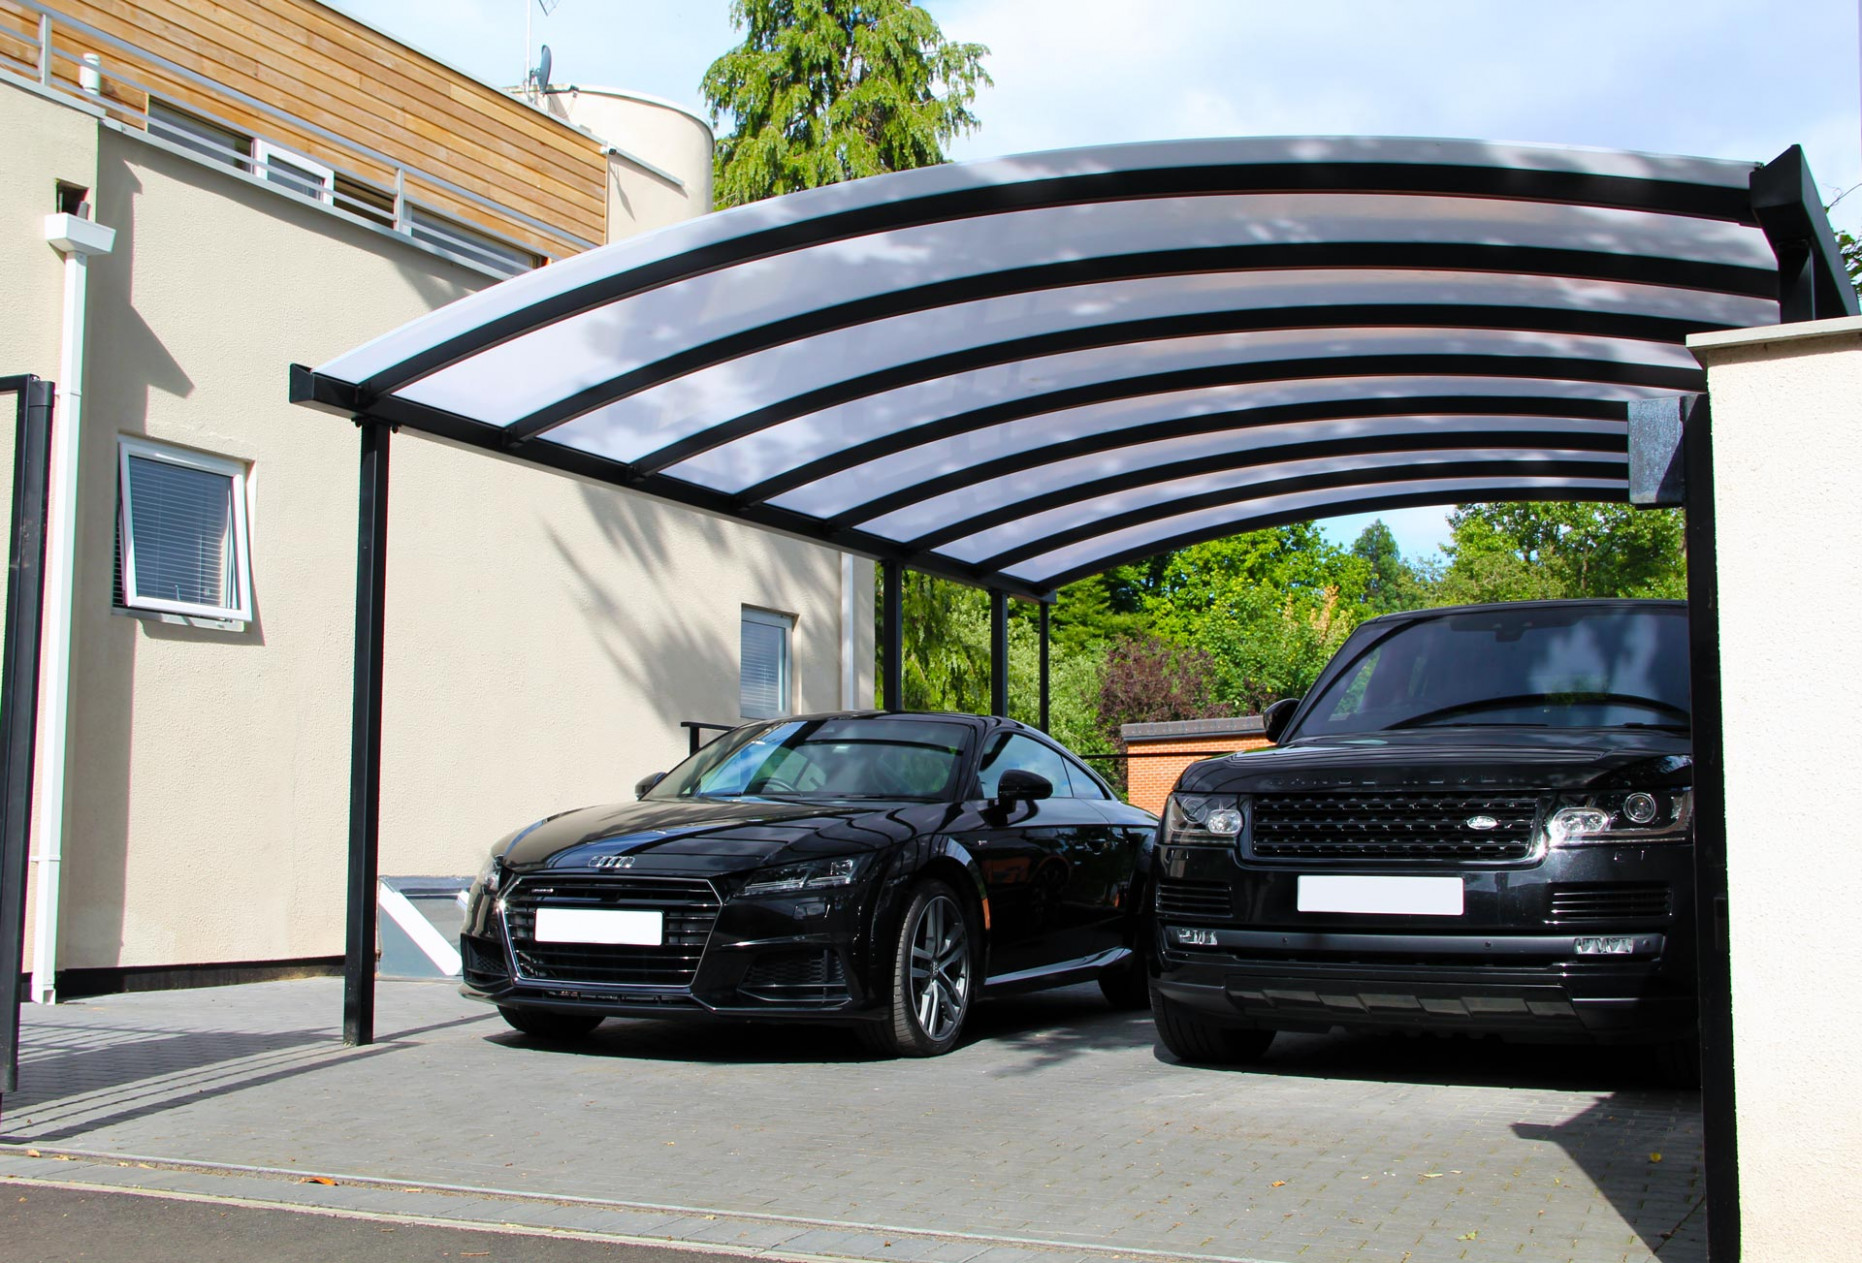 Car Port Canopy For Cars | Kappion Carports & Canopies Carports Contemporary Near Me